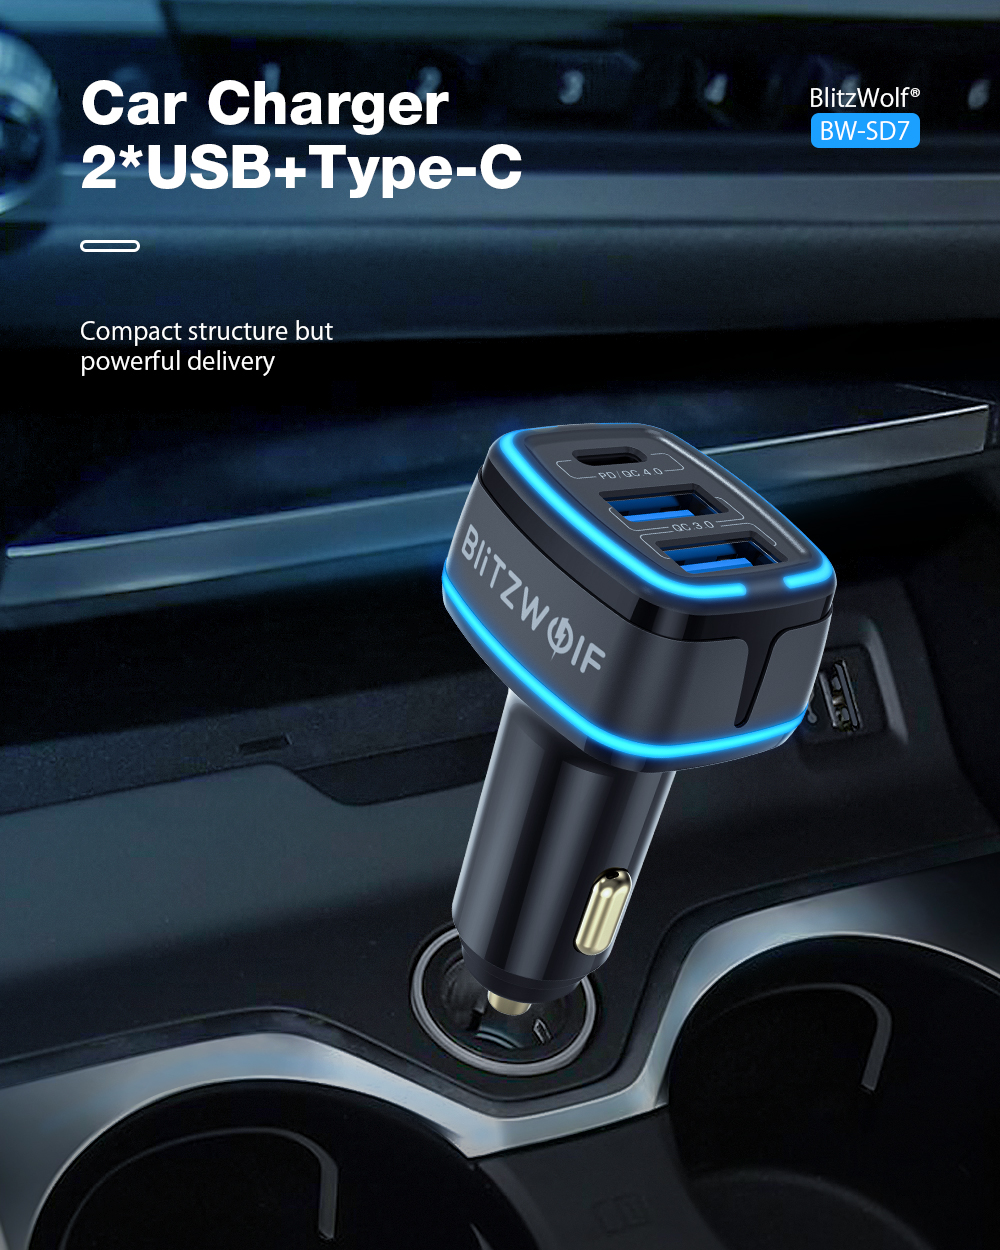 BlitzWolf BW-SD7 car charger